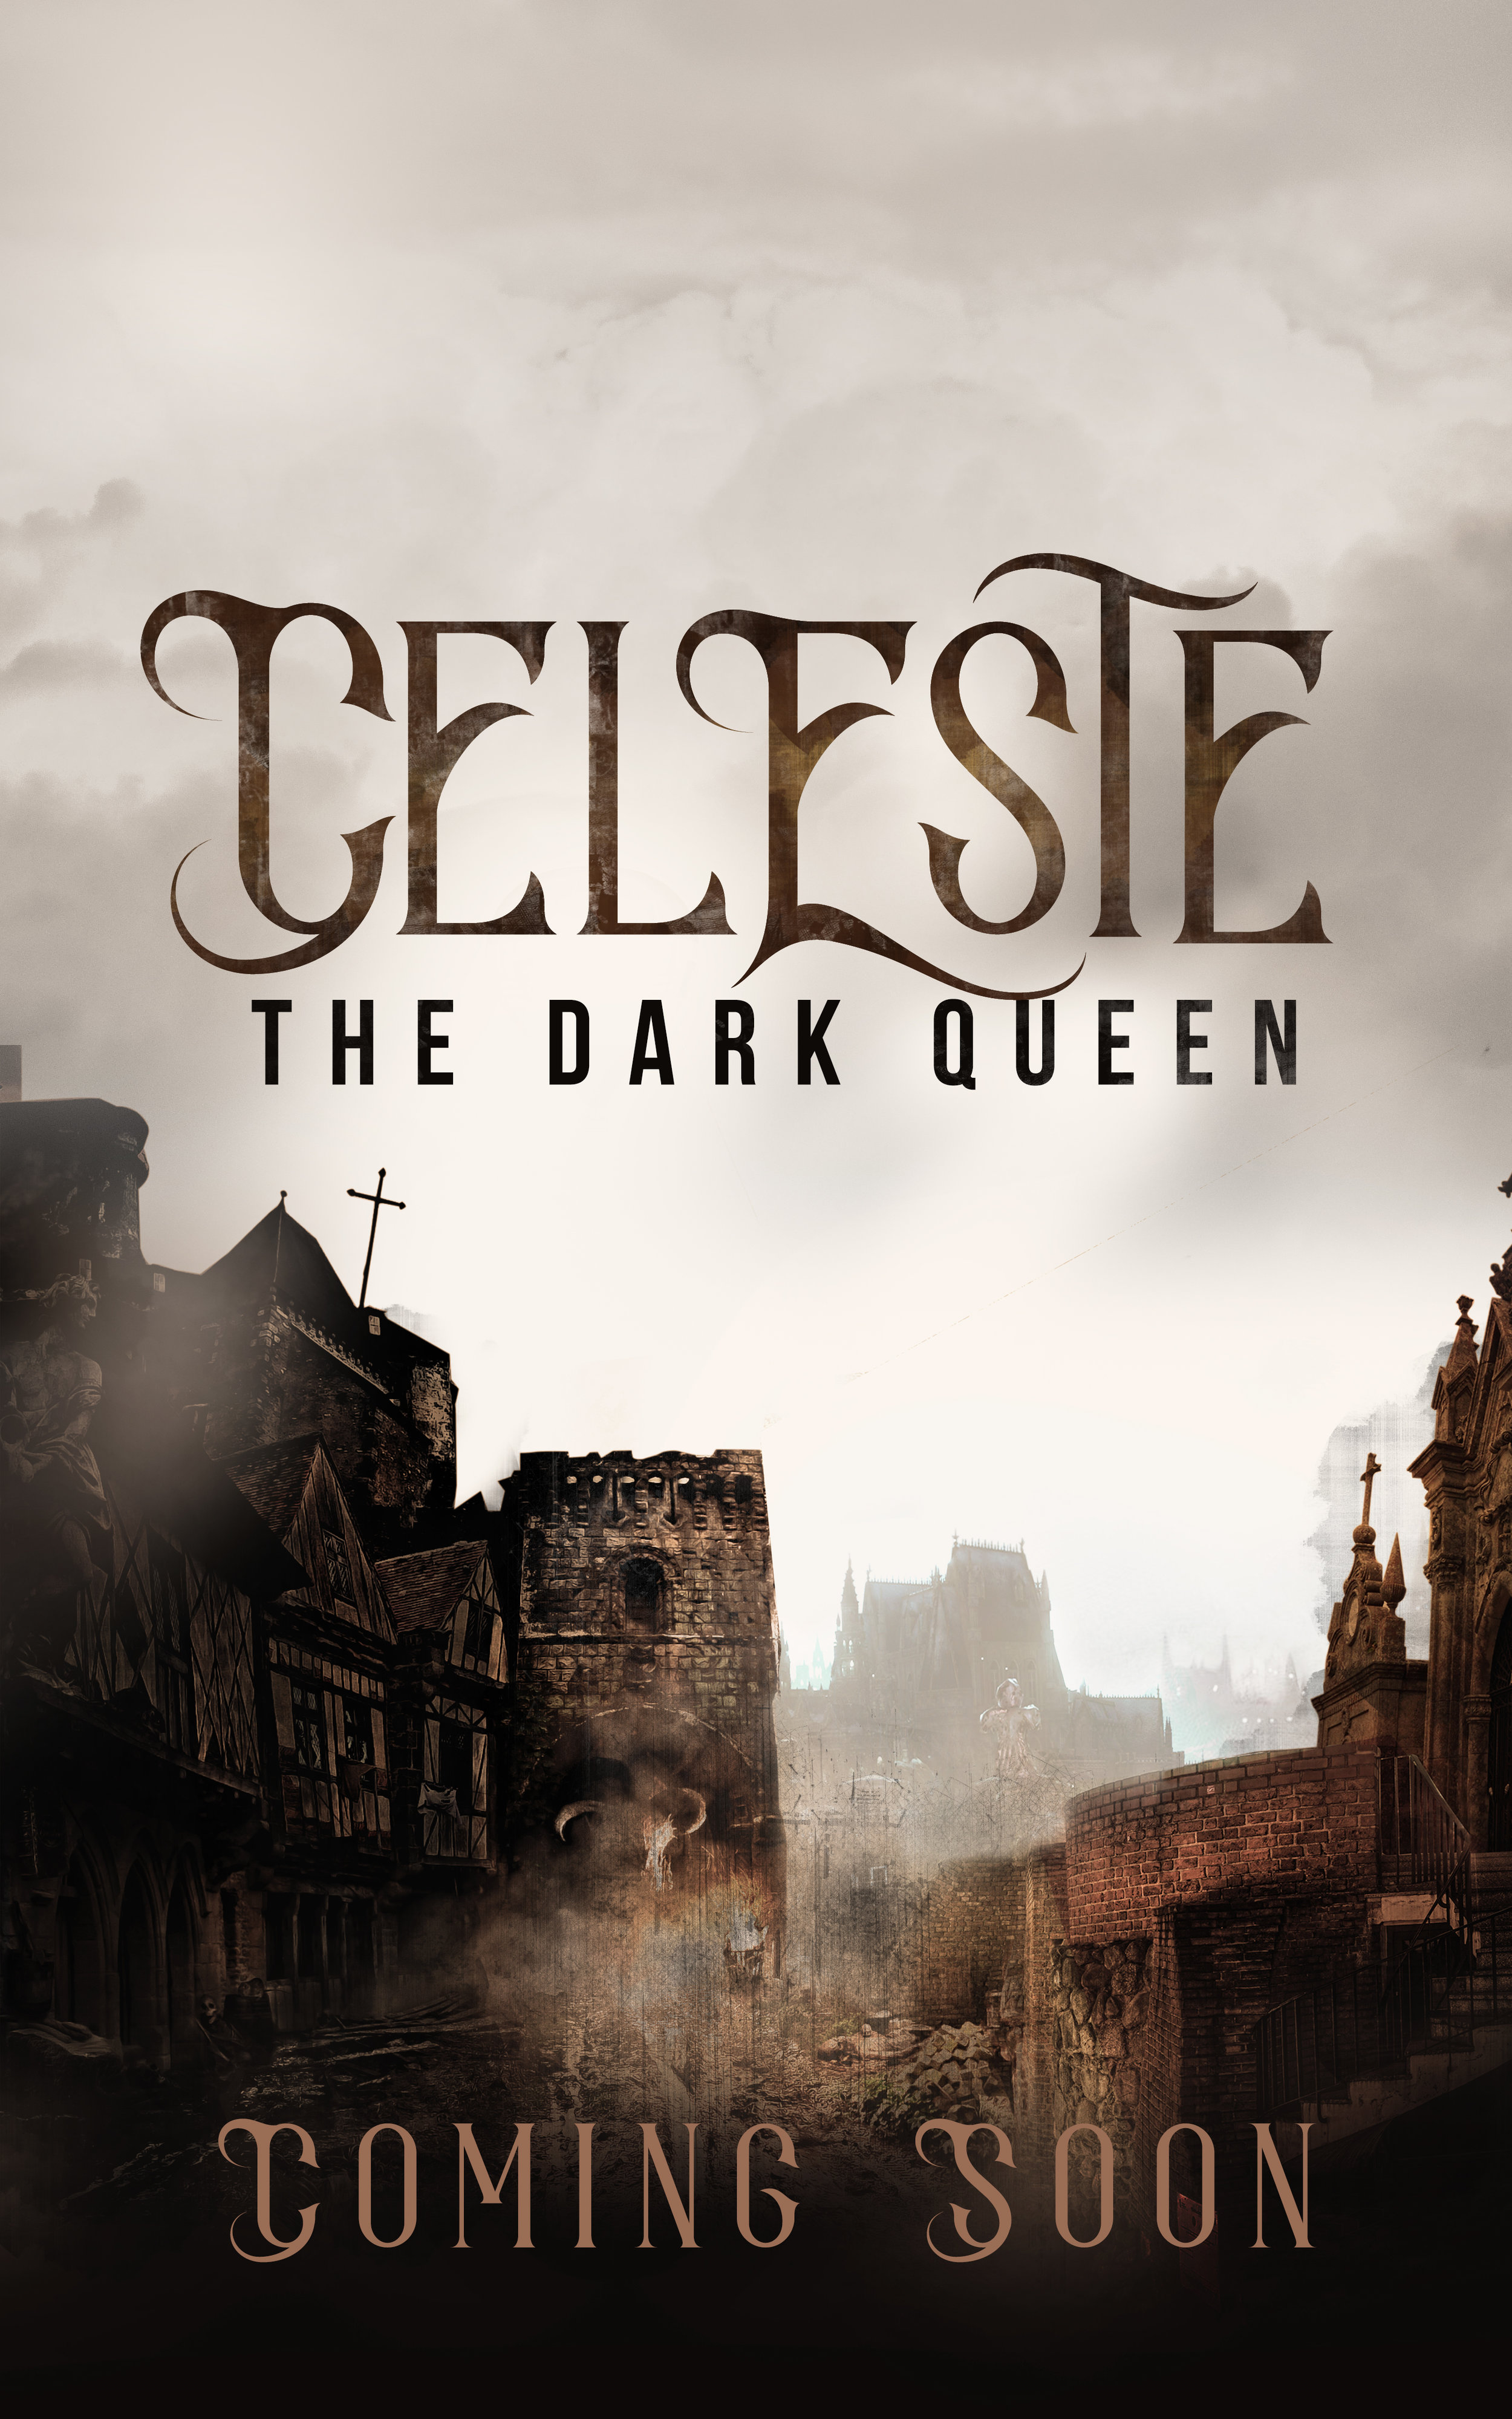 celeste the dark queen coming soon samantha eklund